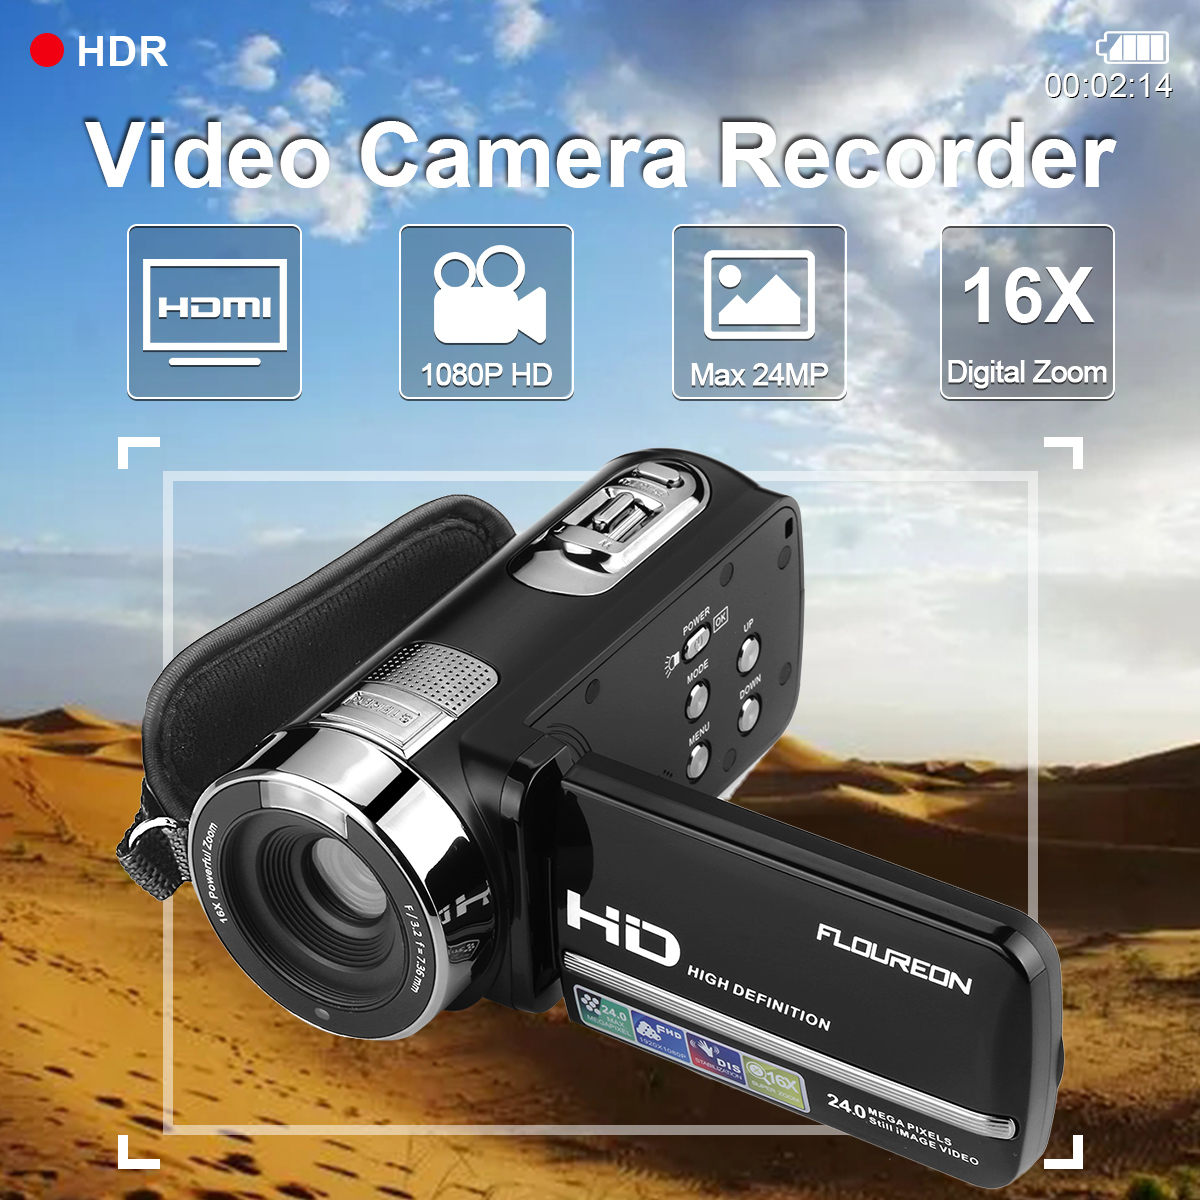 "Video Camera Camcorder Full HD Digital Camera 1080p 16X Digital Zoom Night Vision Pause Function with 3.0"" LCD and 270 Degree Rotation Screen with Remote Controller"